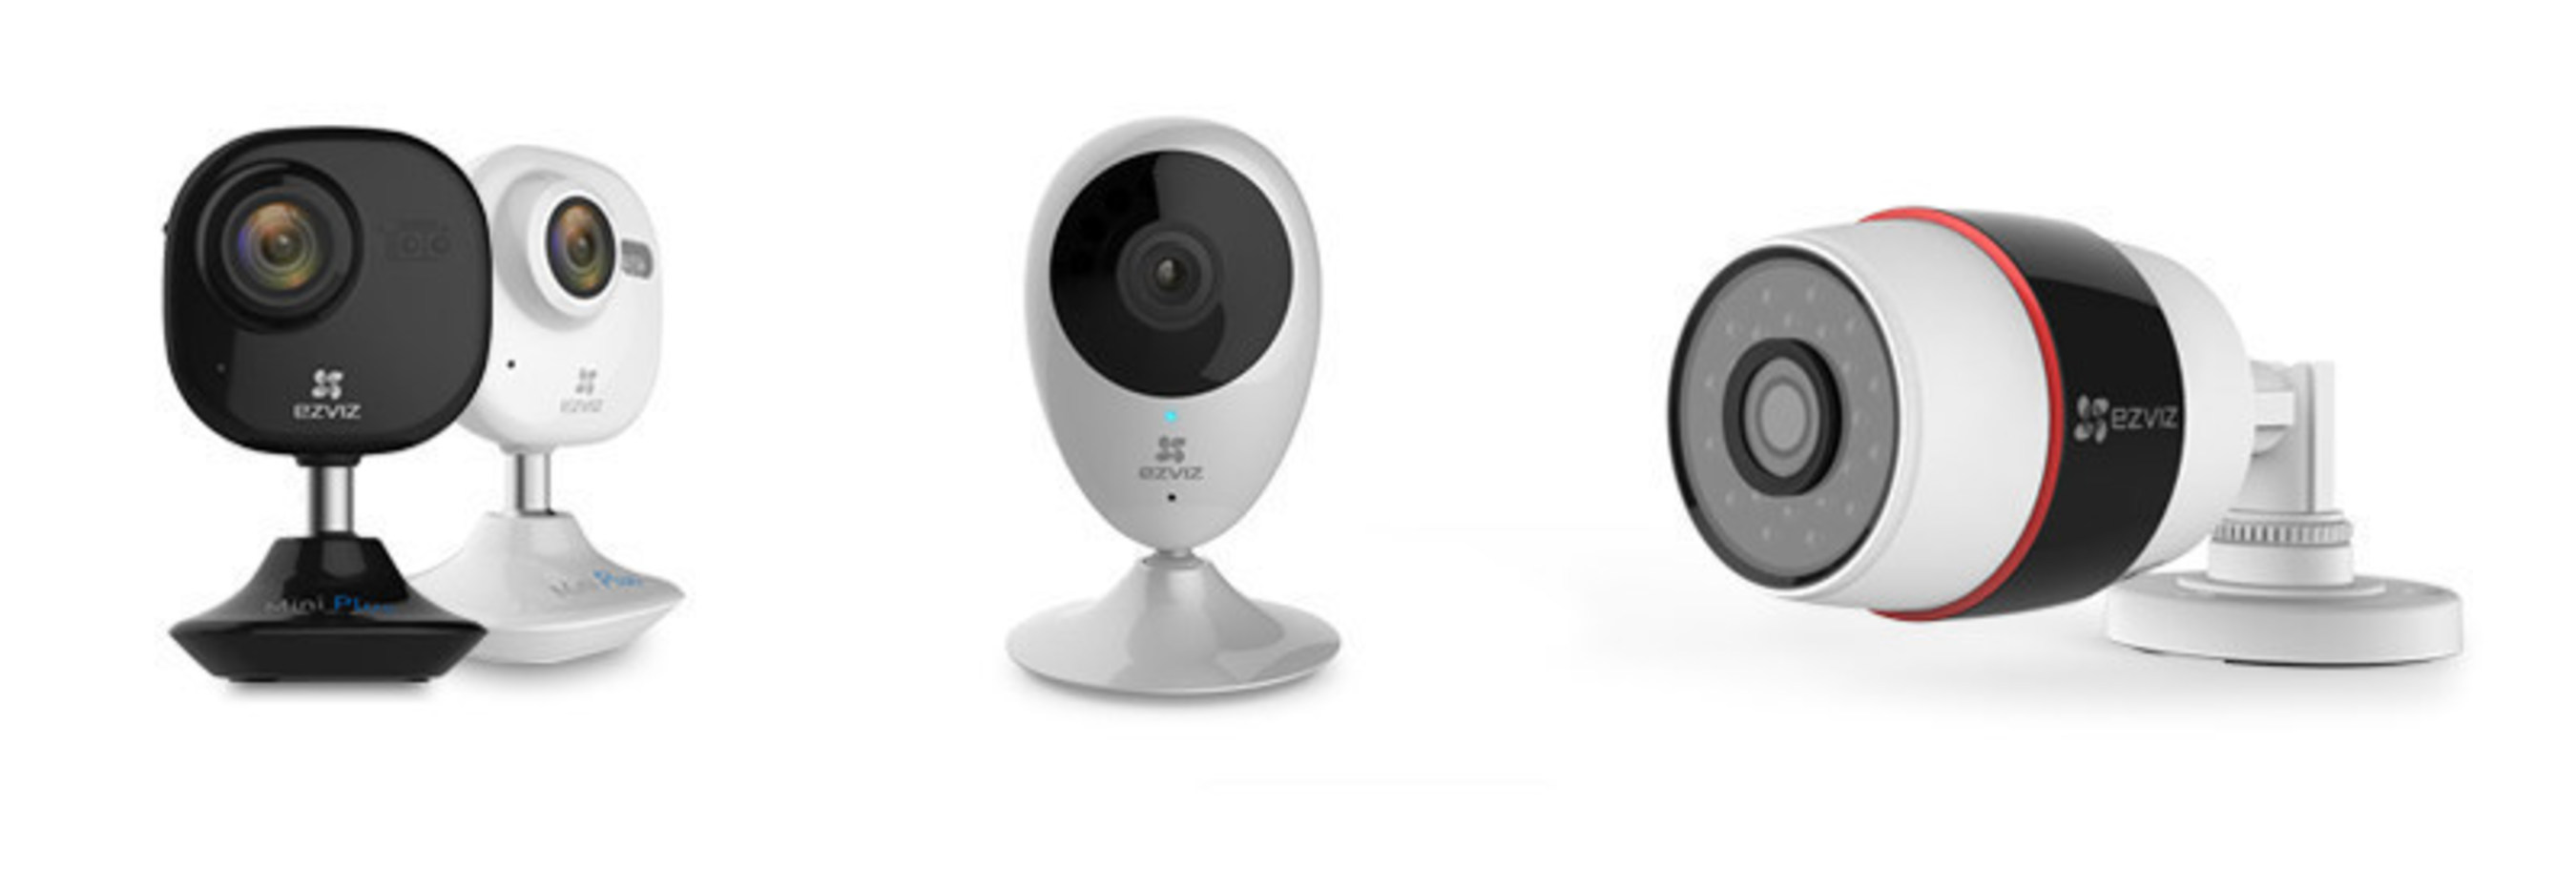 EZVIZ Brings Three New Products to the Smart Home Experience